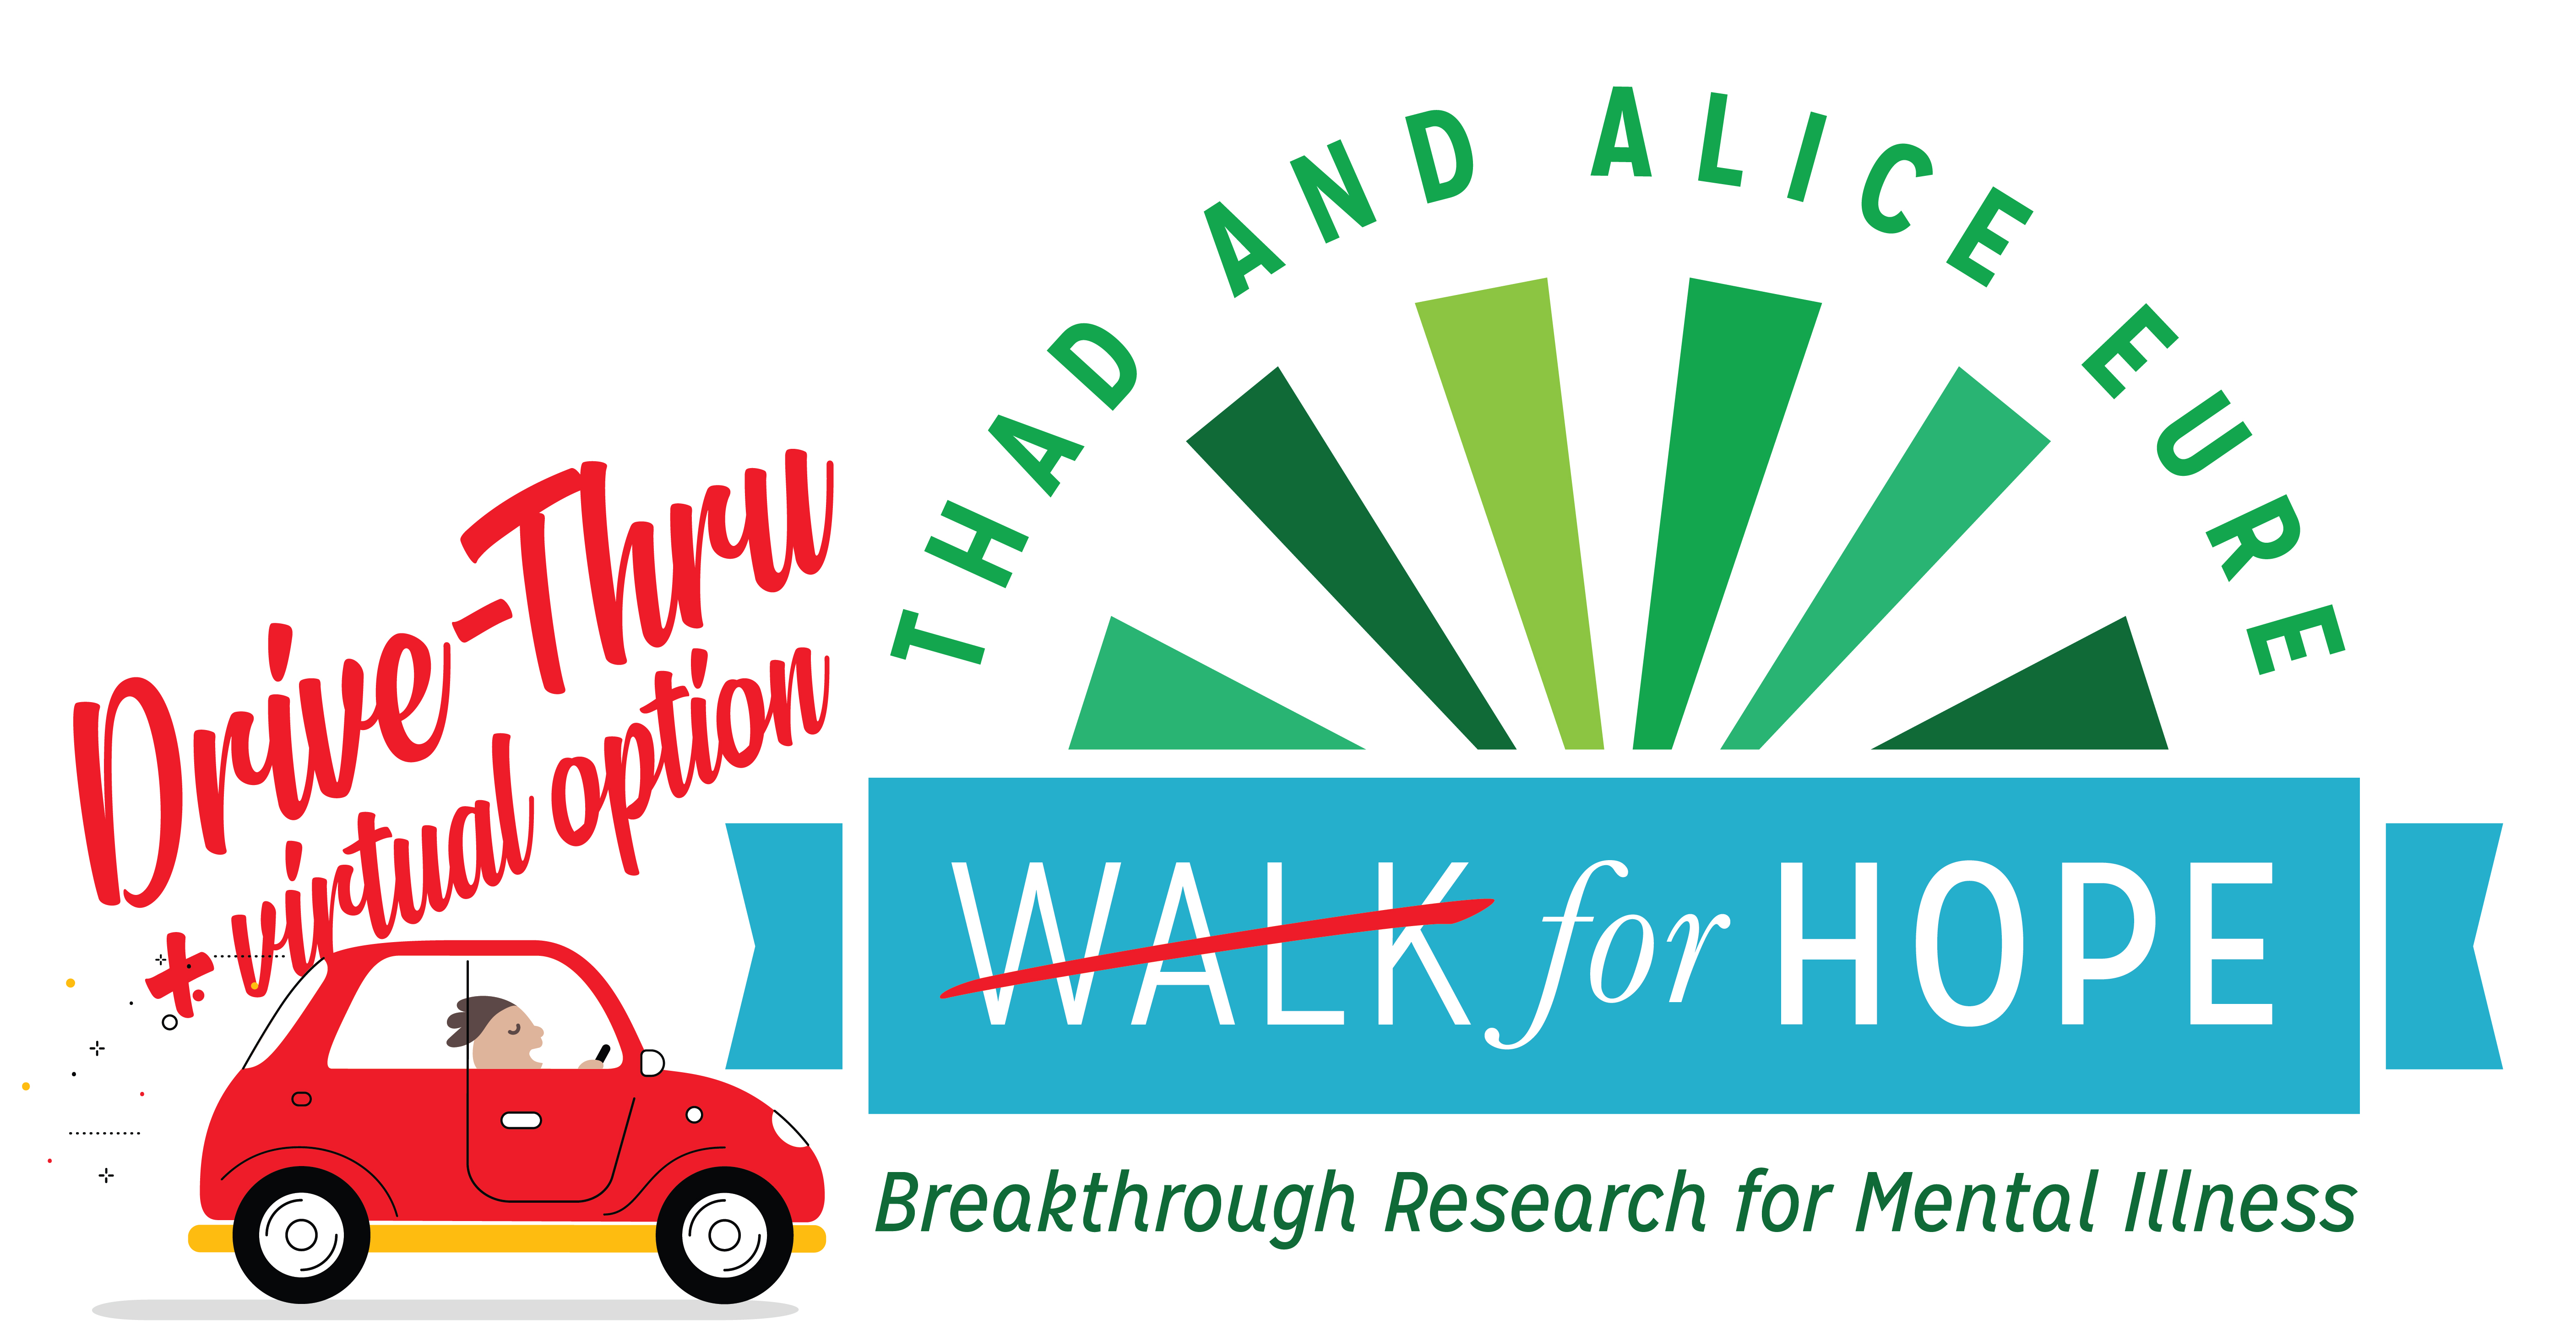 32nd Annual Thad & Alice Eure Walk-Run-Festival